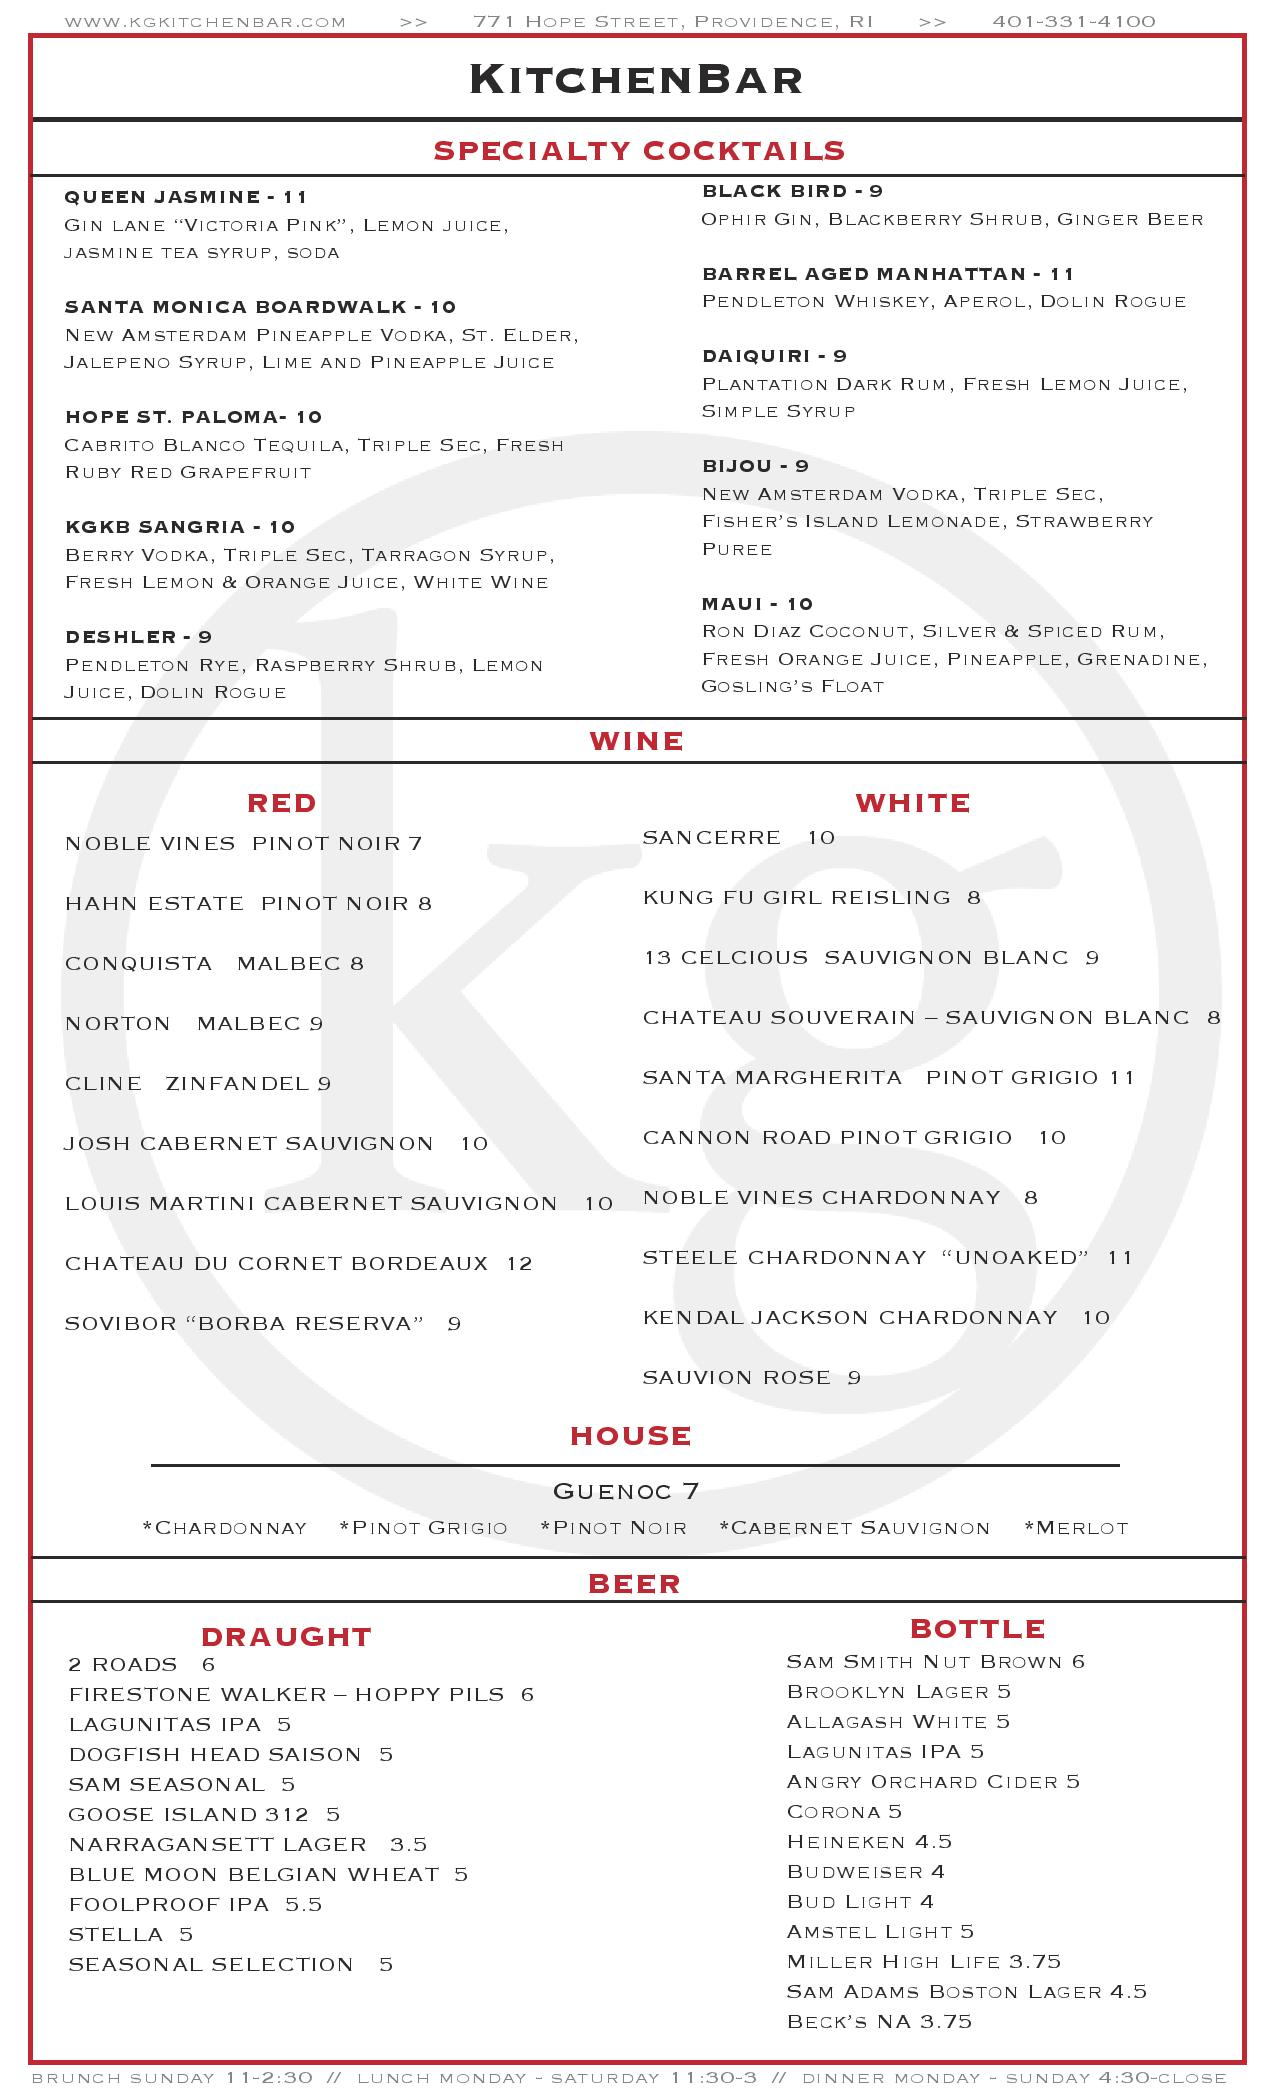 menu – kg kitchen bar